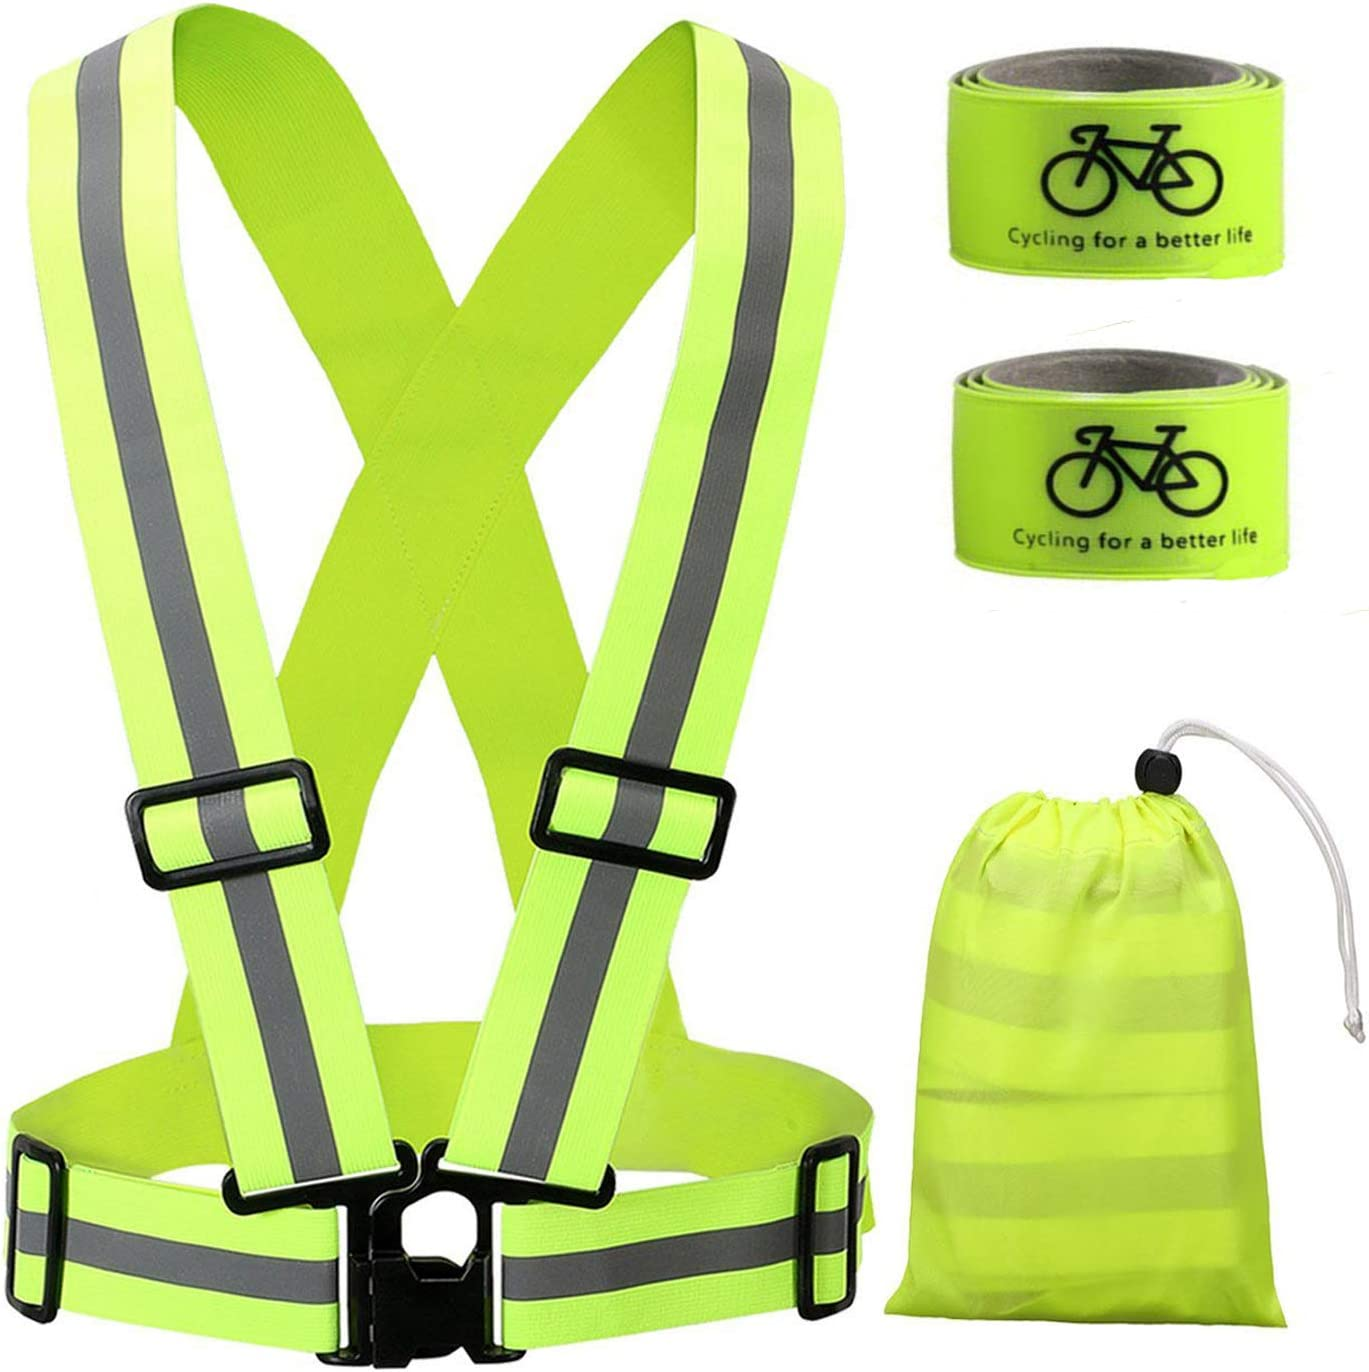 Reflective Vest L/&G Adjustable /& Multi-Purpose Safety Reflective for Day/&Night Running Jogging and Hiking Motorcycle Riding Living/&Giving Reflective Running Vest with Hi Vis Bands Cycling Riding,Walking Motorcycle